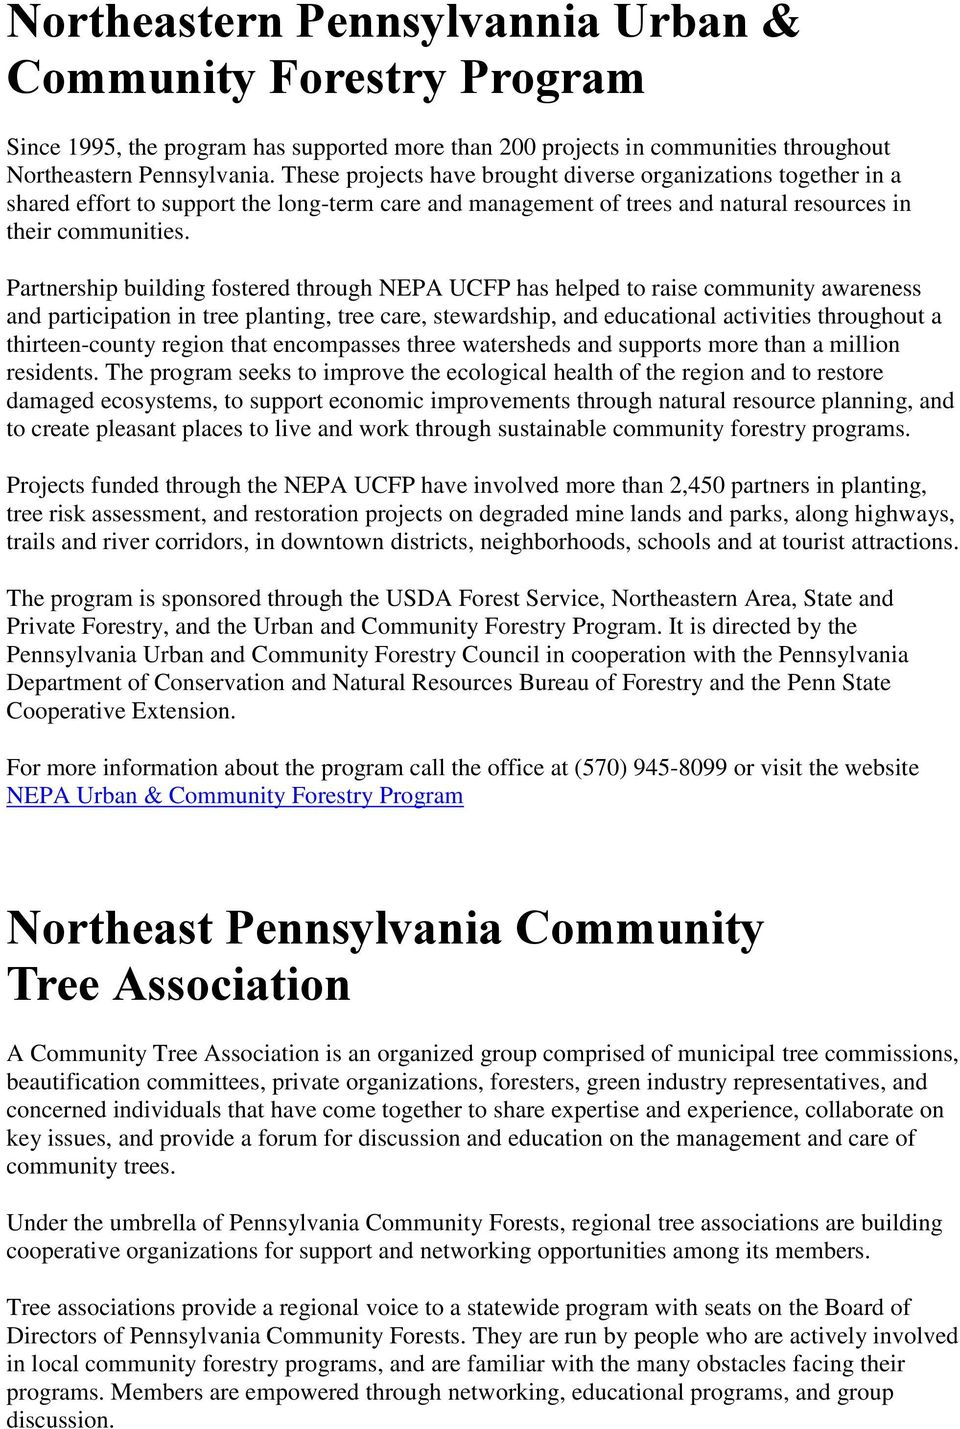 Partnership building fostered through NEPA UCFP has helped to raise community awareness and participation in tree planting, tree care, stewardship, and educational activities throughout a